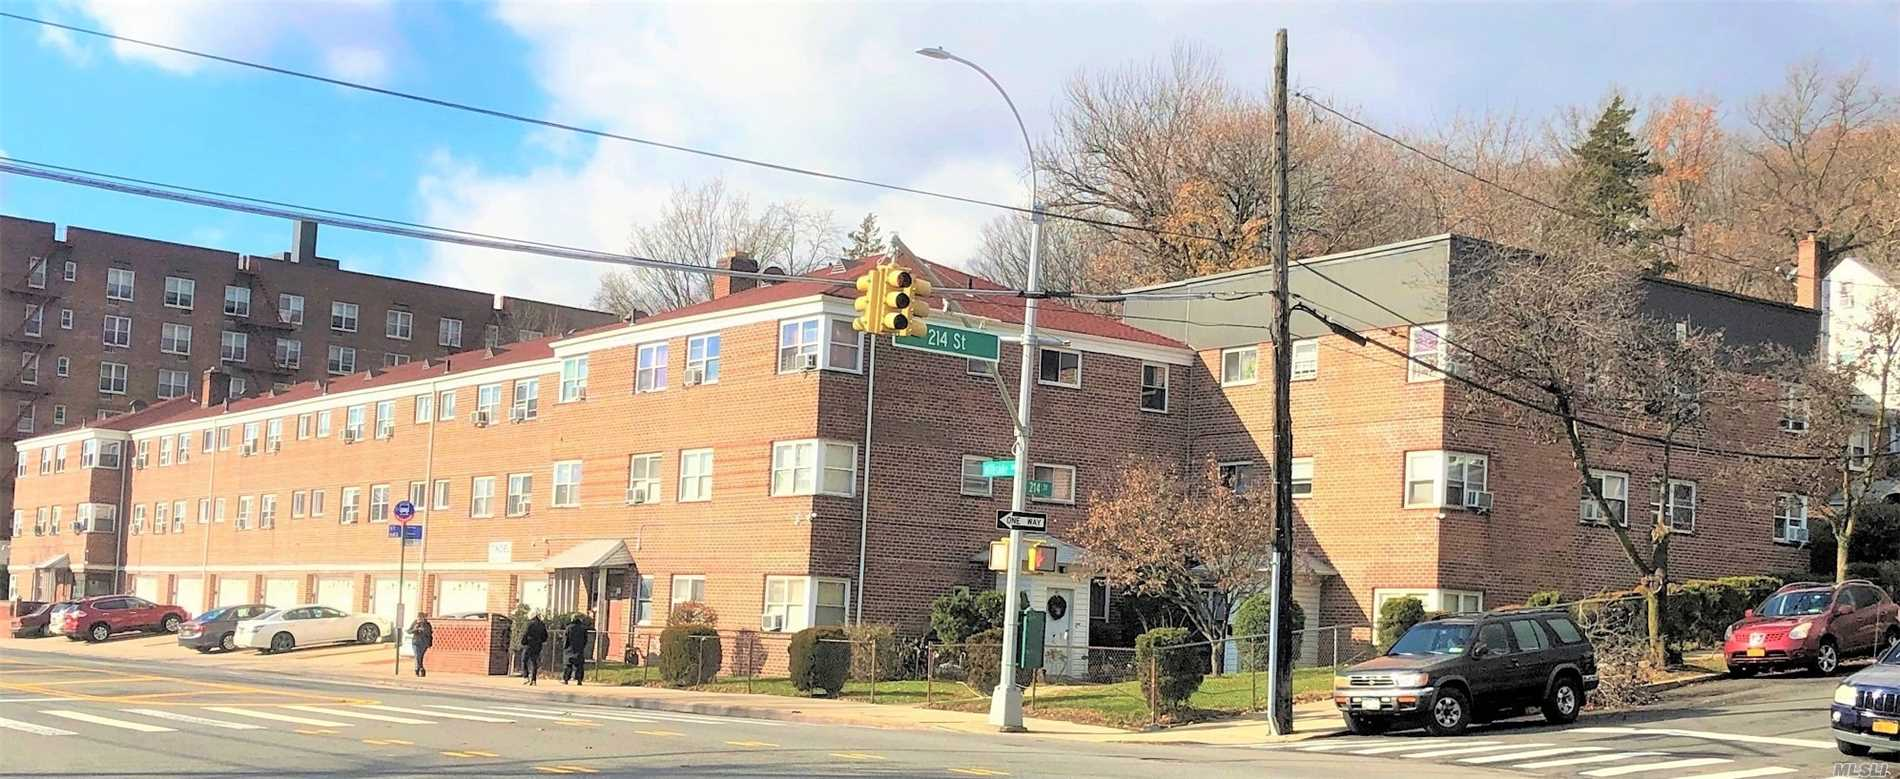 Gorgeous 36 Garden Apartment Building For Sale In The Heart Of Hillside Avenue, Queens Village. It Has 36 Apts. (22) 2Br & (14) 1Br And 36 Storage Space. All Rented, Tenants Pay Utilities. Building Is In A Sophisticated Area. Renovated With Brand New Roof. 12 Two Story & 4 Three Story. Attached Building. More Potential Income For 36 Storage & 16 Parking. Near To All Major Highways & Malls. Yearly Income Appx. $741K.